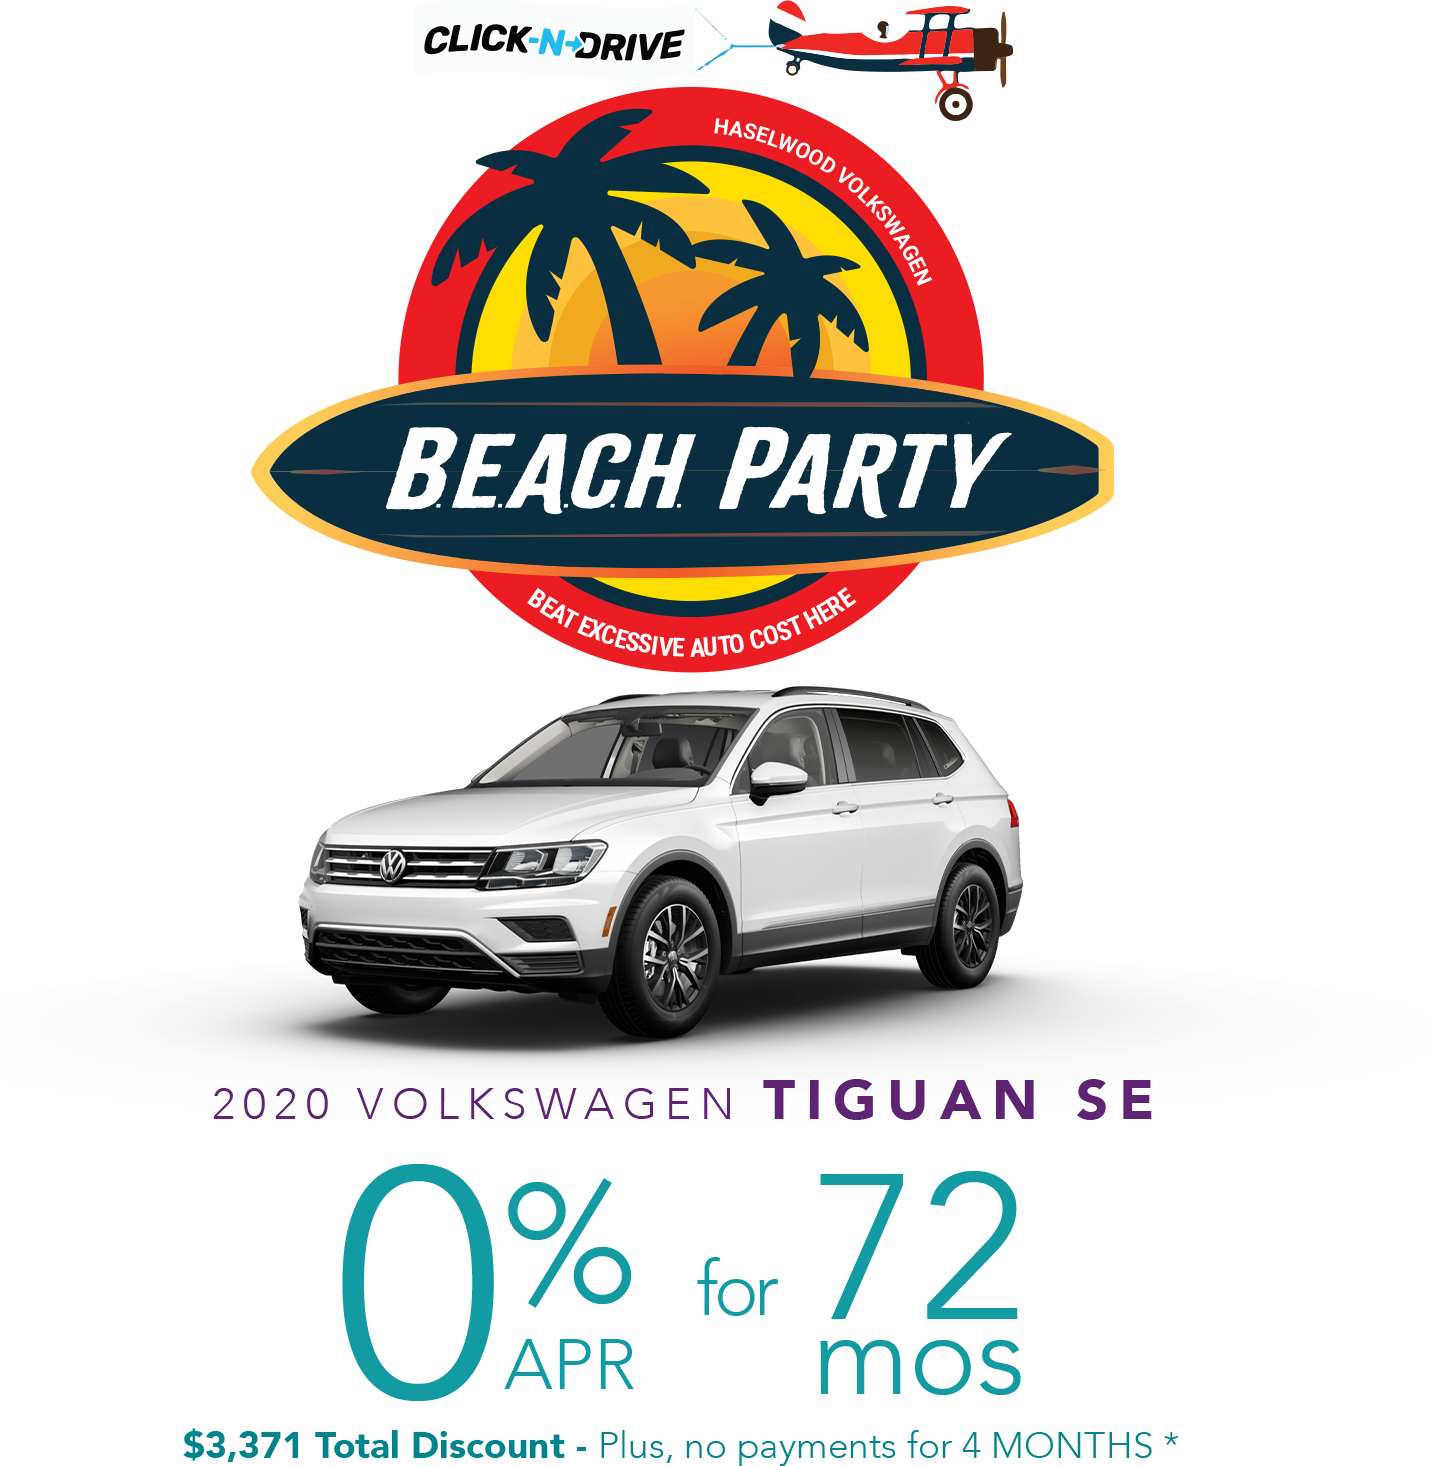 Beach Party Offer